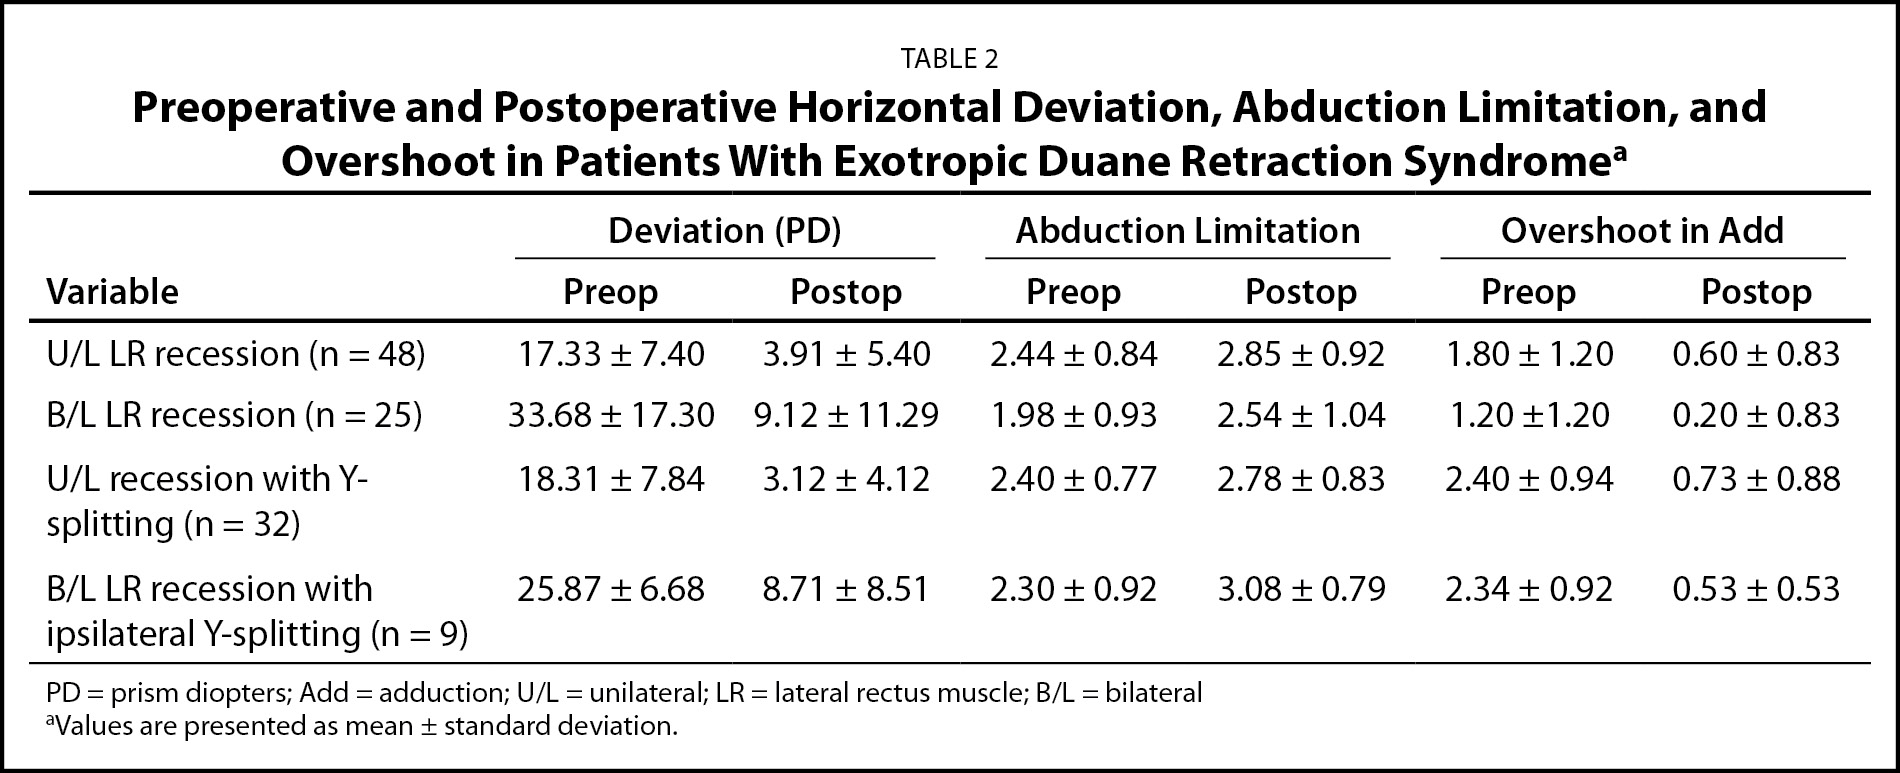 Preoperative and Postoperative Horizontal Deviation, Abduction Limitation, and Overshoot in Patients With Exotropic Duane Retraction Syndromea